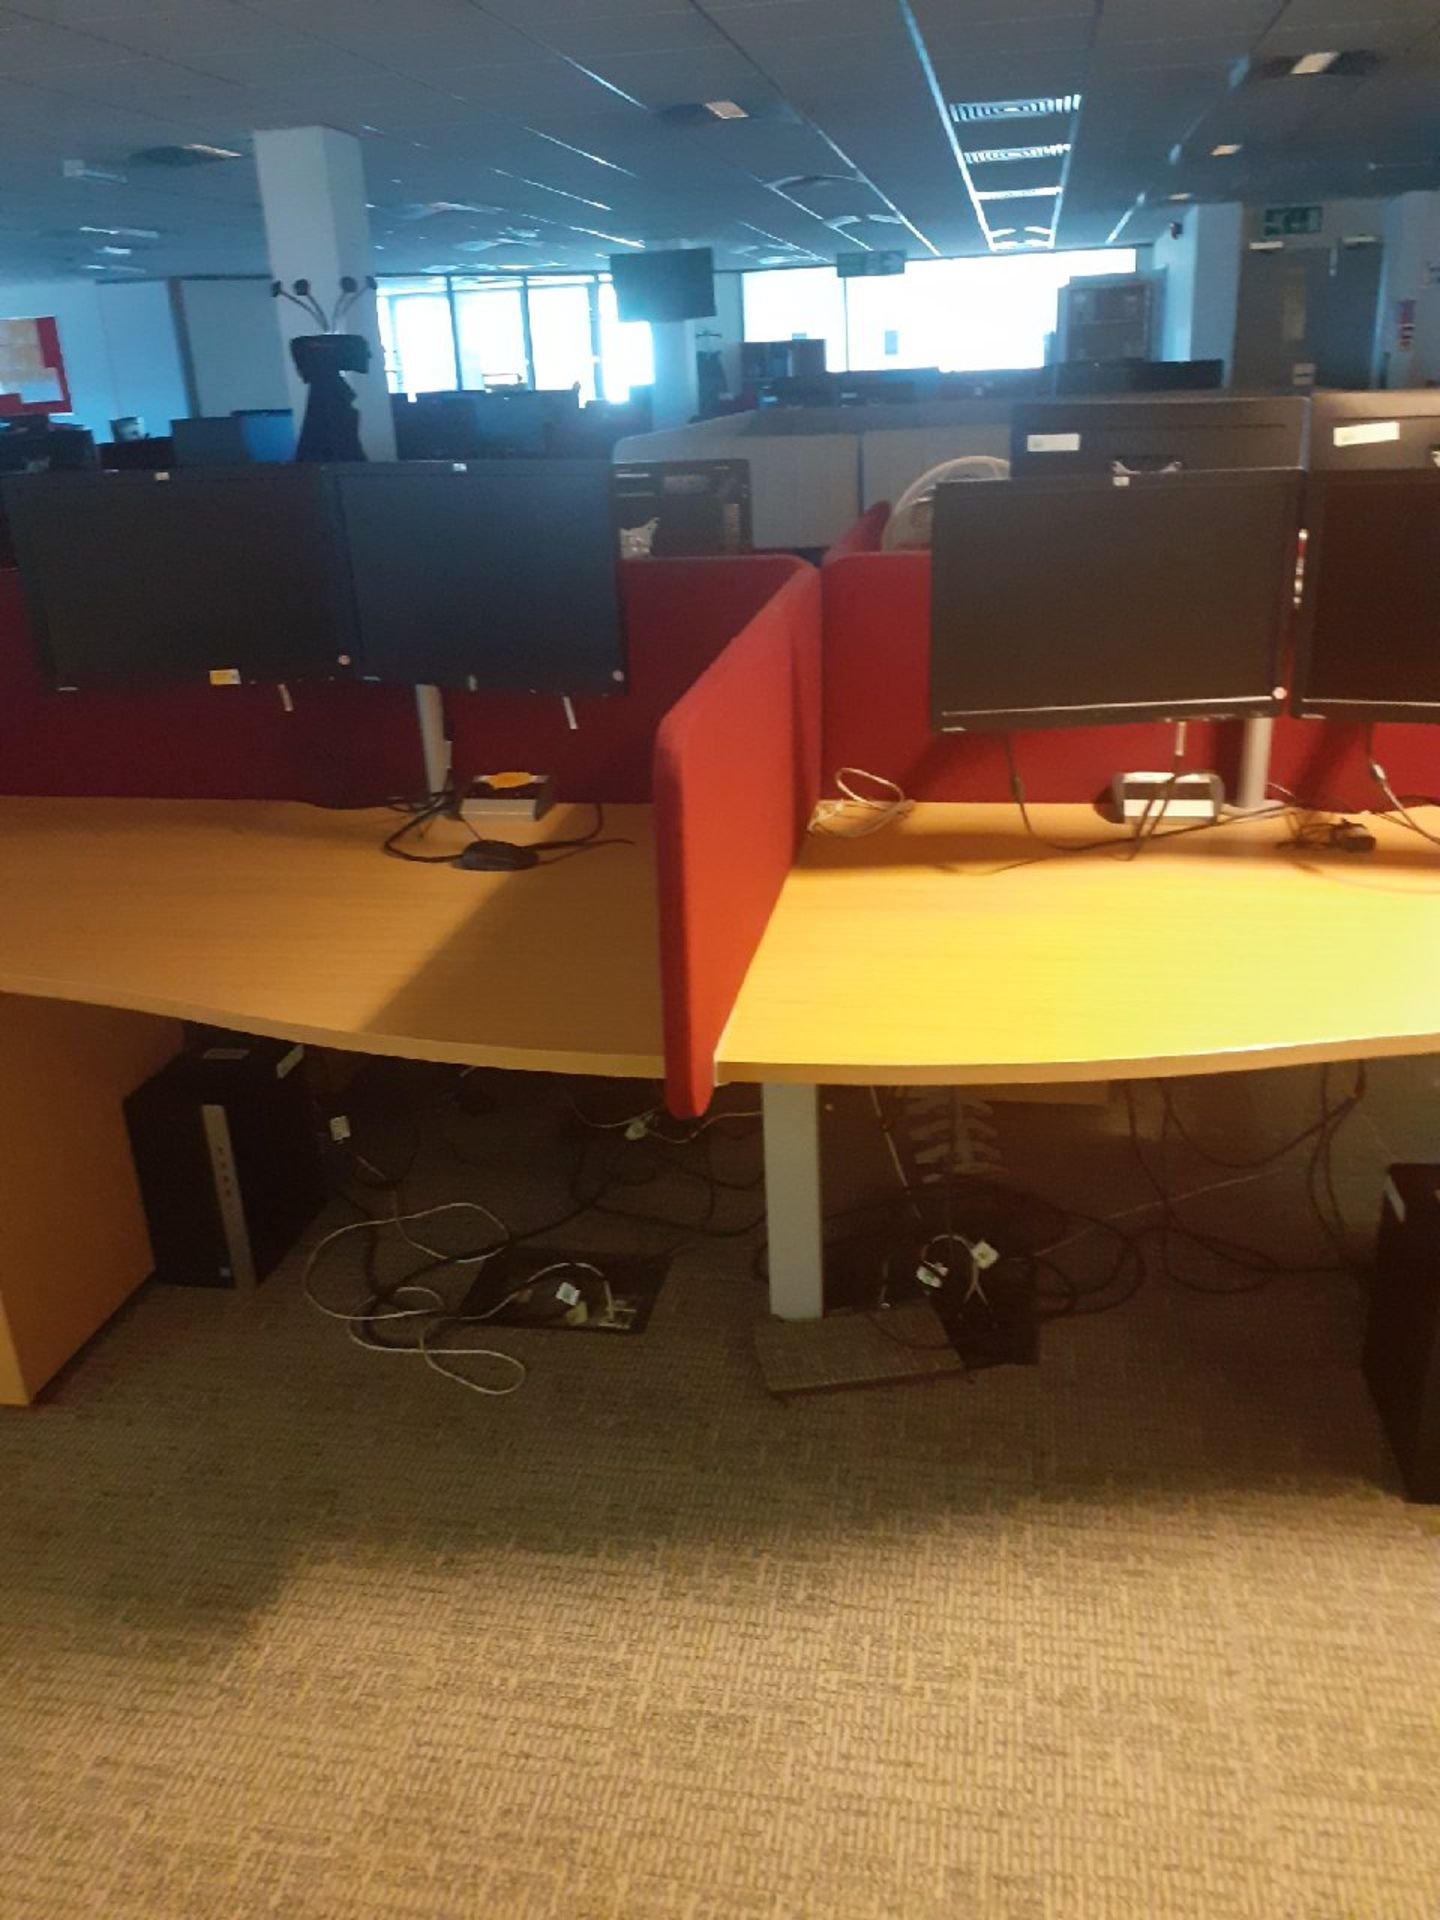 1 x Bank of 6 office desk/workstations & 3 x Banks of 8 office desks/workstations. - Image 2 of 3